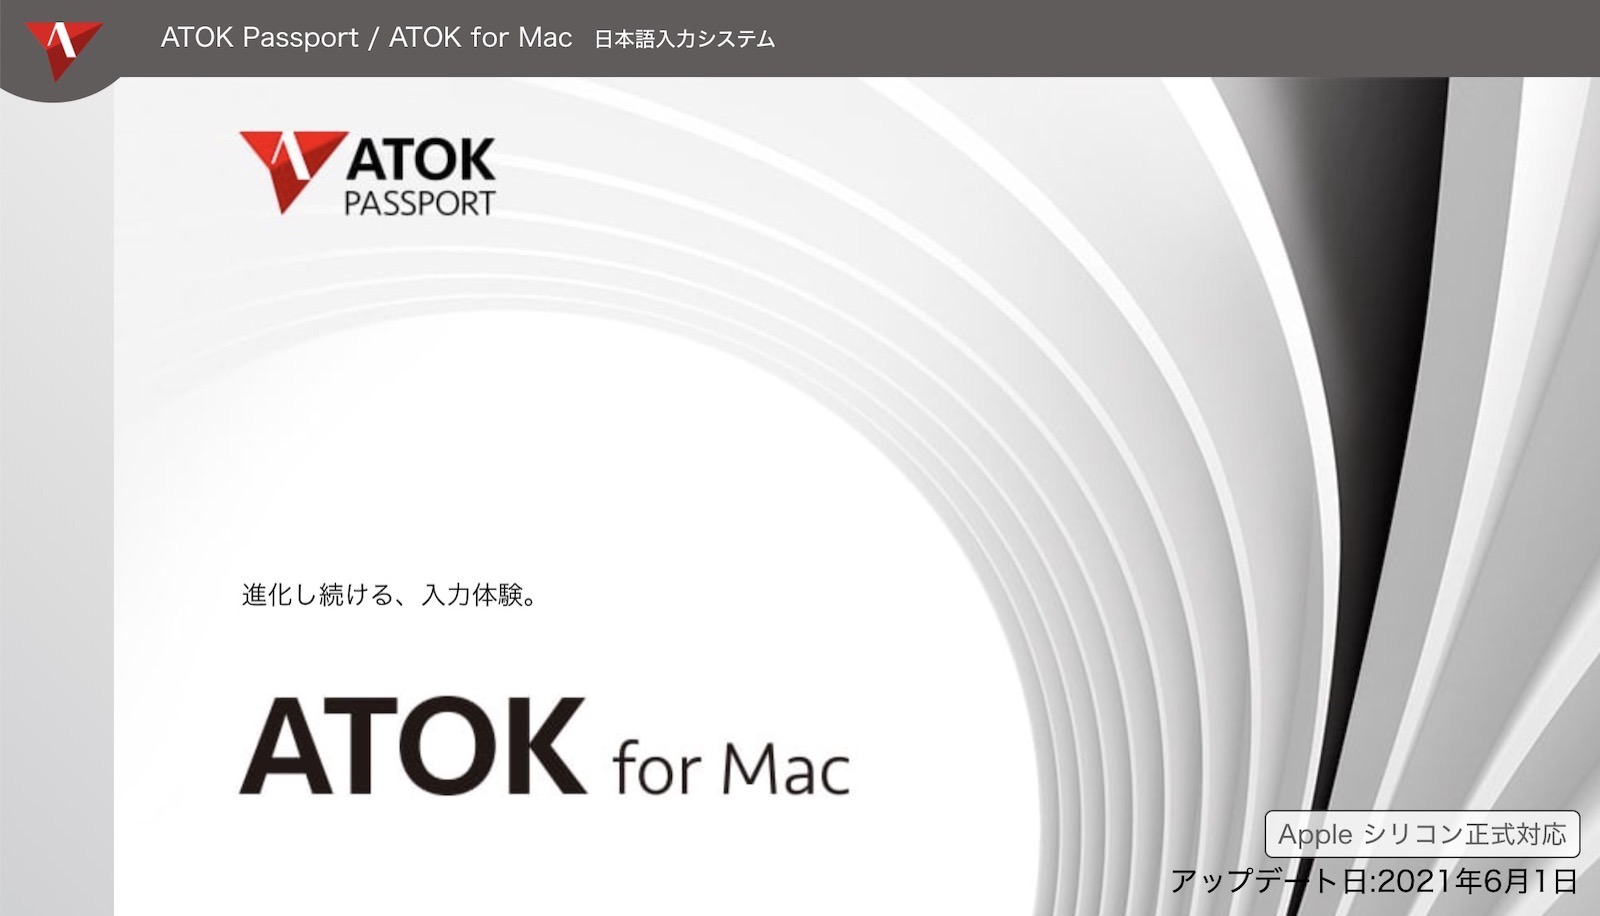 Atok for mac m1 support